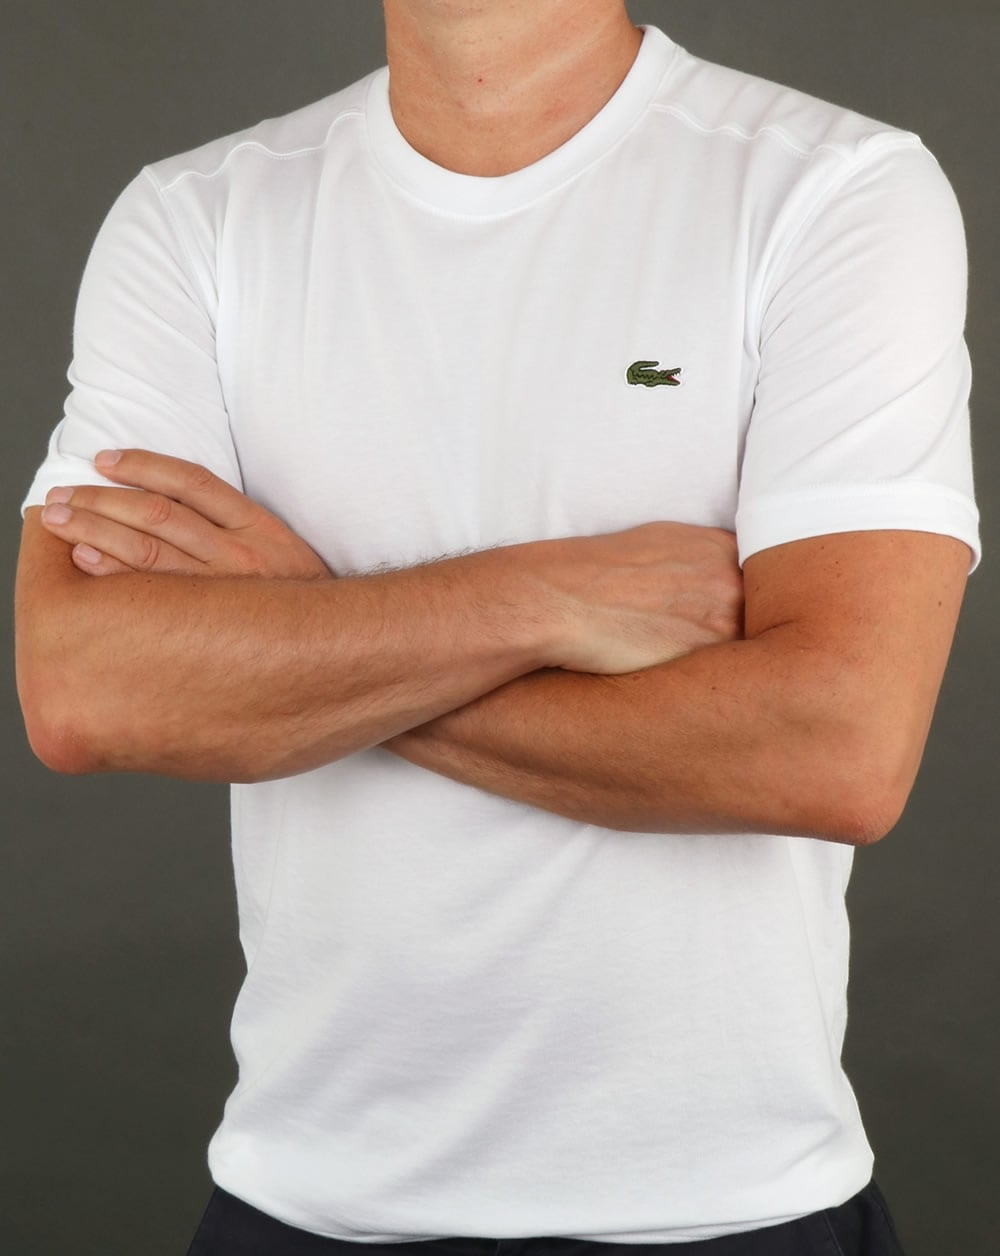 Lacoste t shirt white tee crew neck sport mens for Crew neck white t shirt